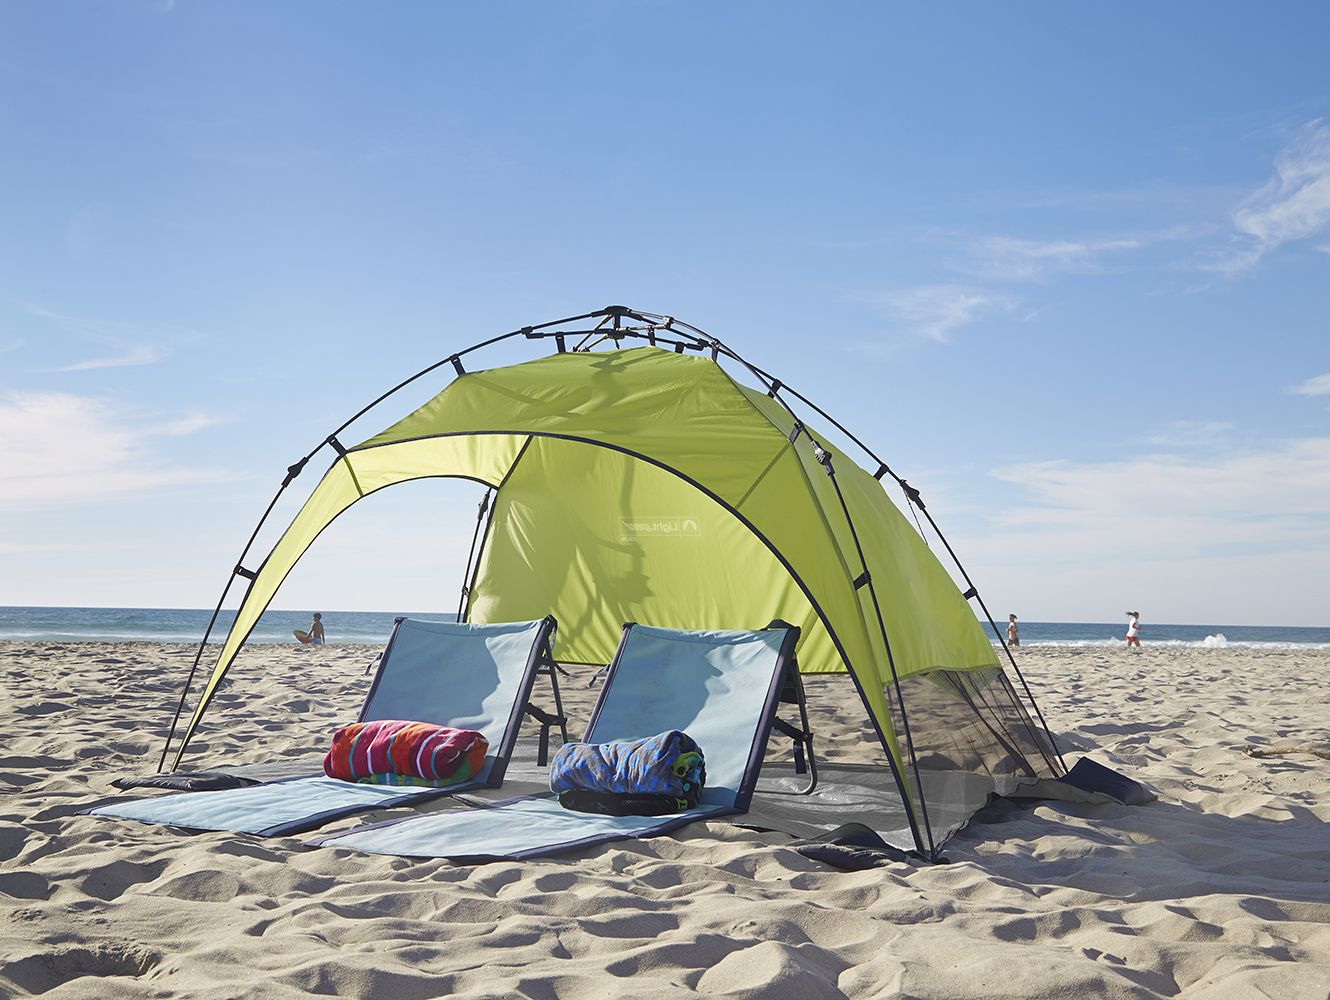 ... Shelter Instant protection from the sun and wind from the Catalina Speed Shelter. Weighing under 5 lb and equipped with a carry bag this beach tent is ... & Catalina Speed Shelter by Lightspeed Outdoors #beachgear ...